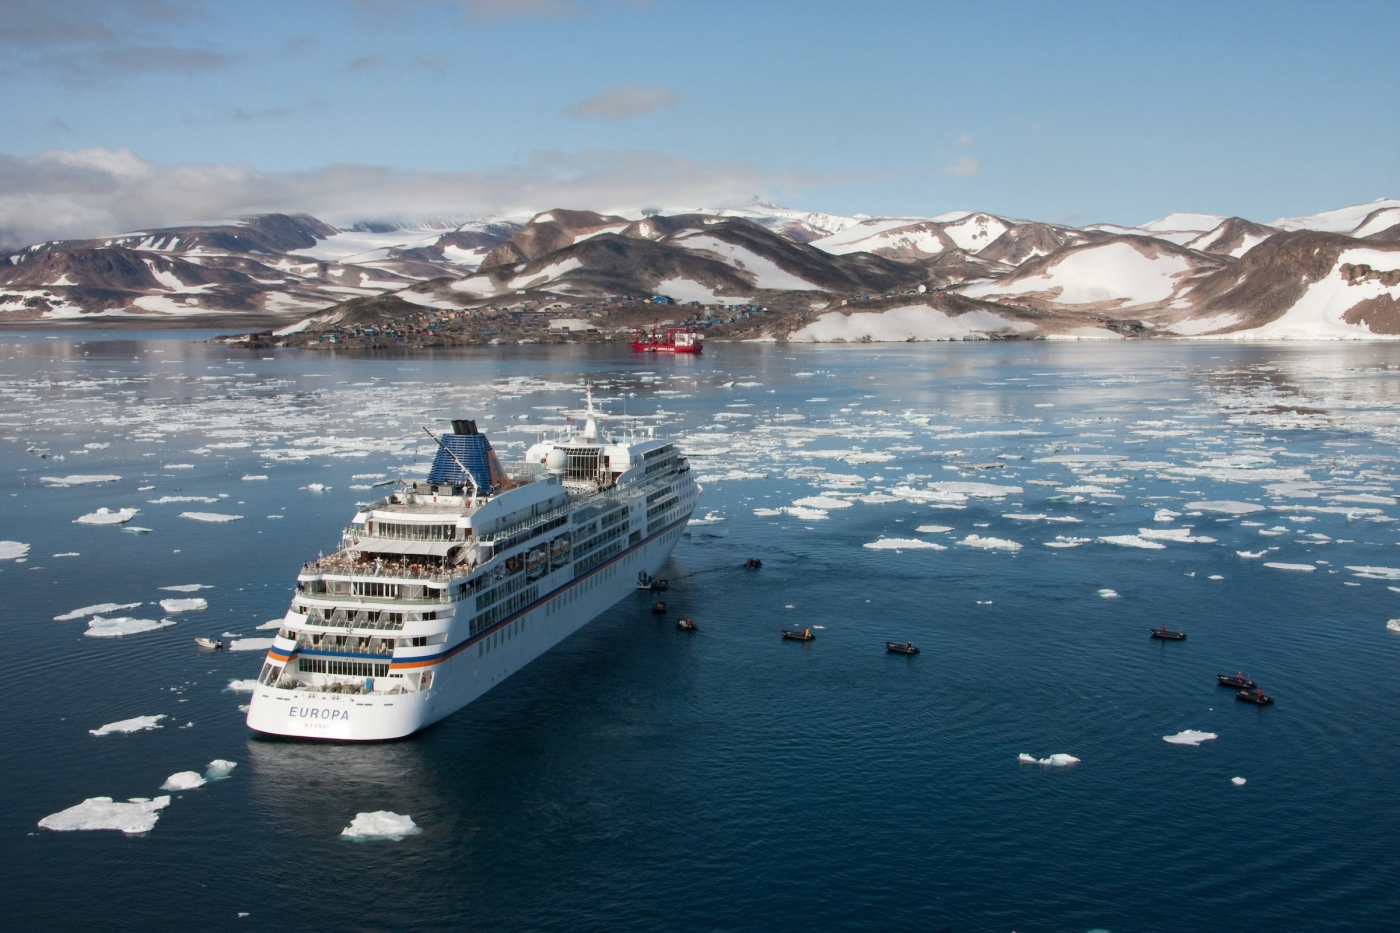 The cruise ship Europa anchored outside Ittoqqortoormiit in East Greenland. By Frank Petersen